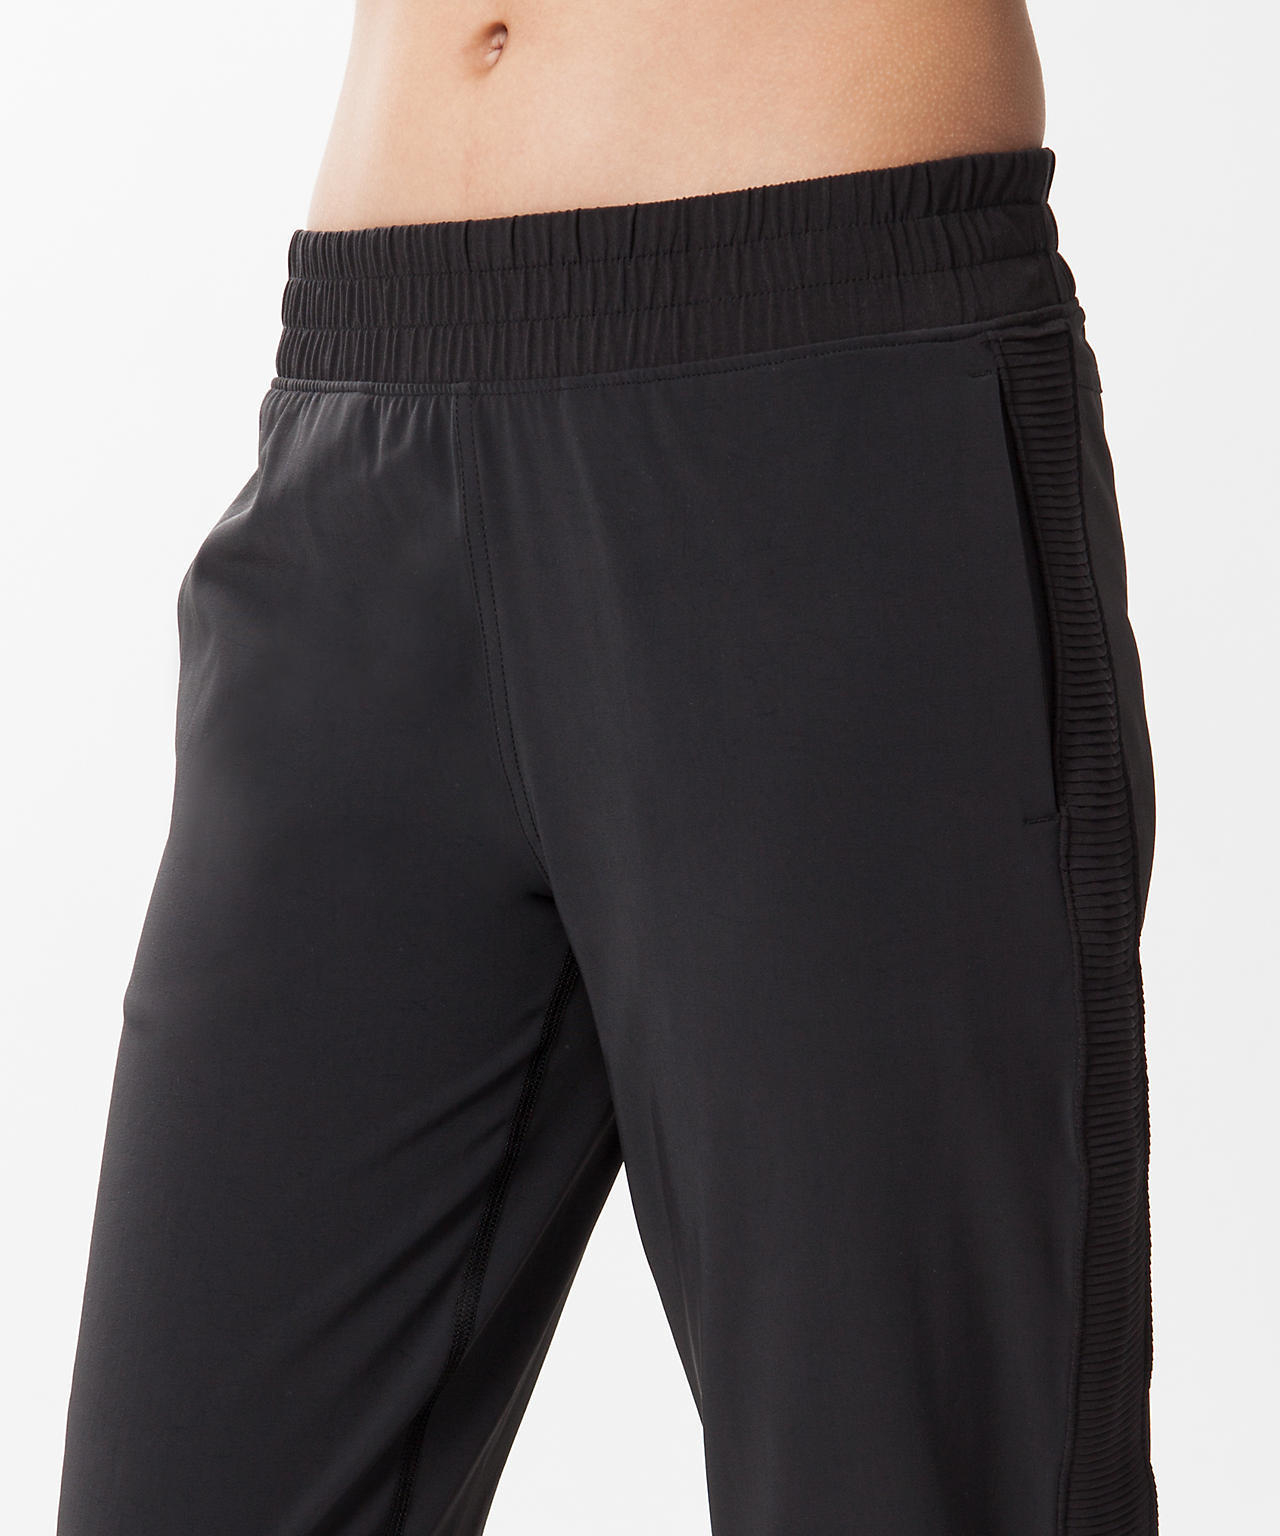 【 Your Pursuit Pant 】★ Black